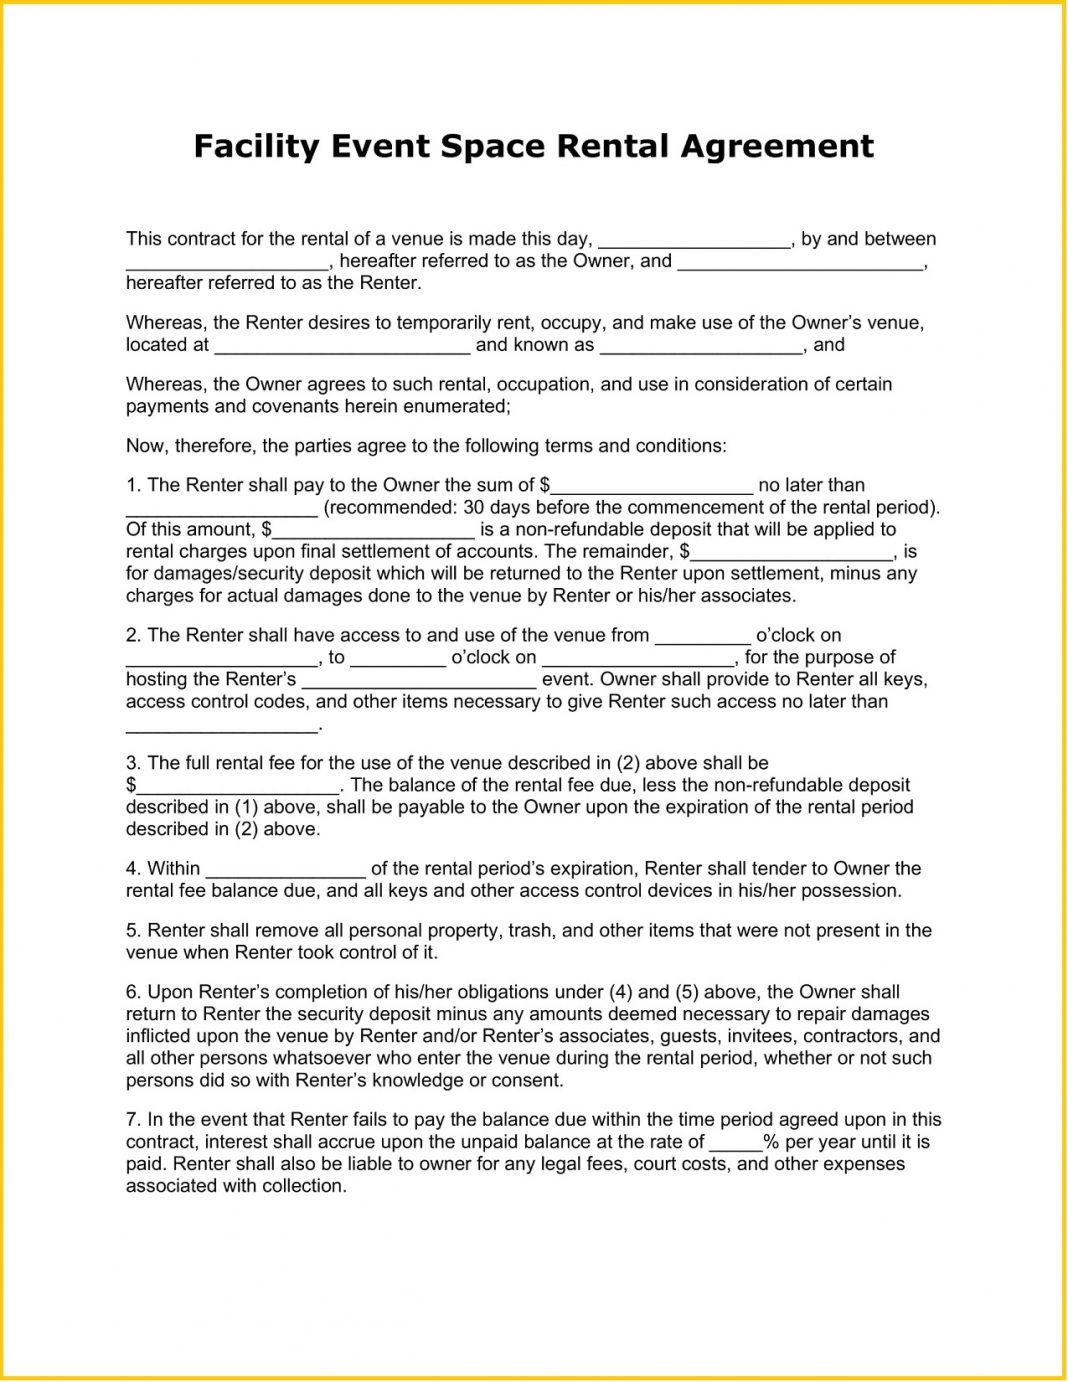 Facility Event Space Rental Agreement Form Word Template Equipment Contract Lease Sample Venue Booking Work For Rent Party  Large